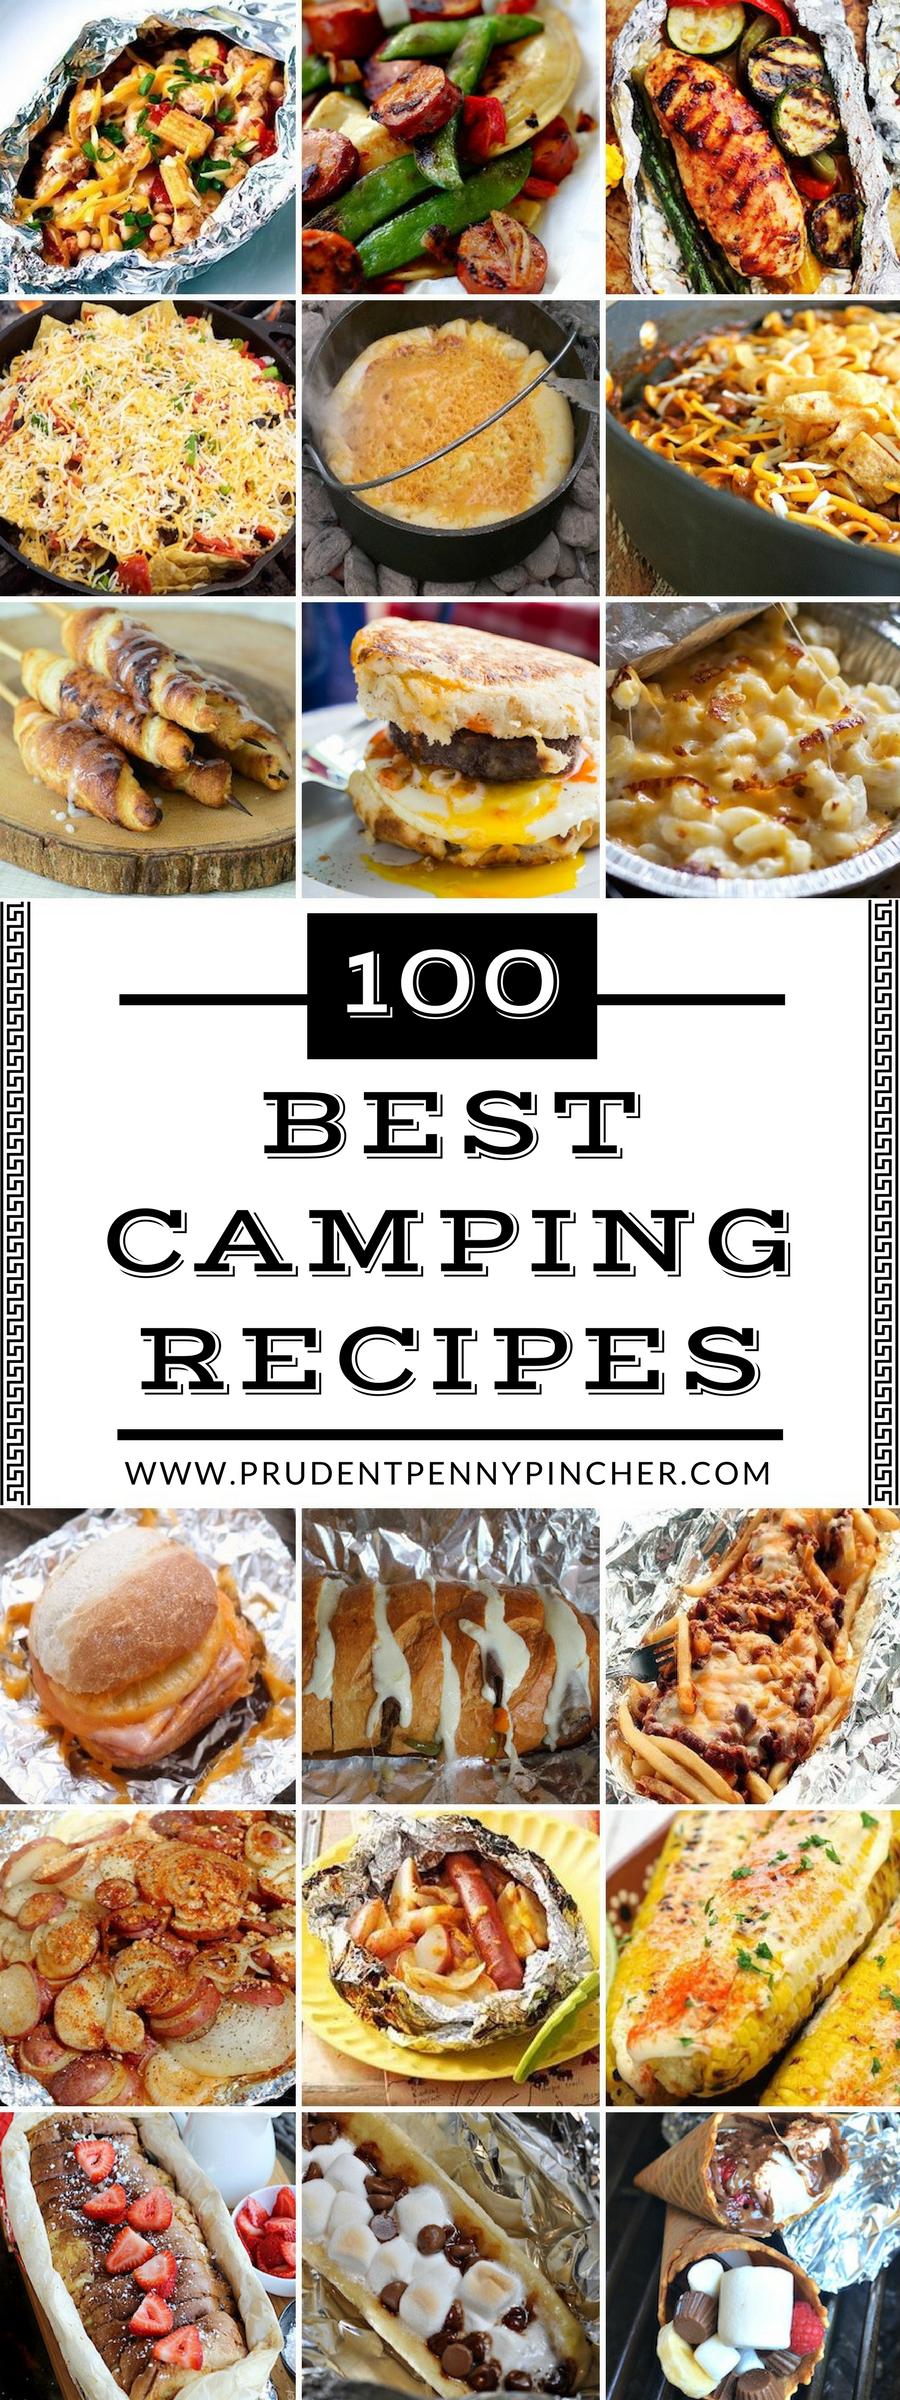 100 Best Camping Recipes